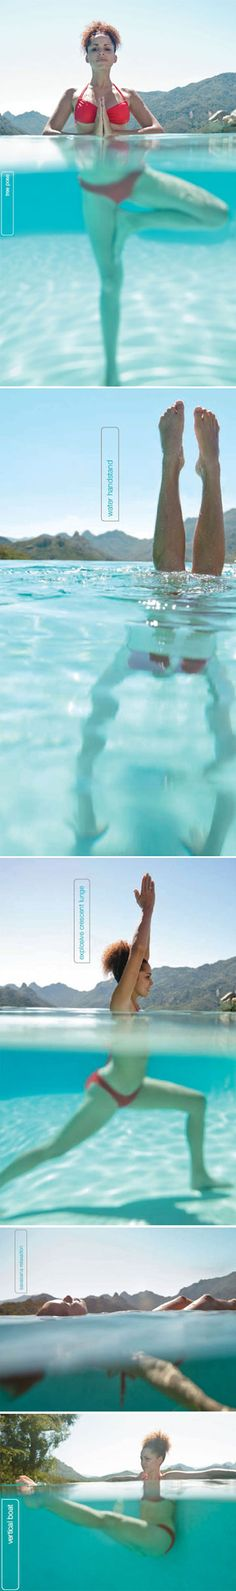 Inspired by Jessica Bickel: This is a great way to keep cool in the summer heat. Yoga exercises in the pool.